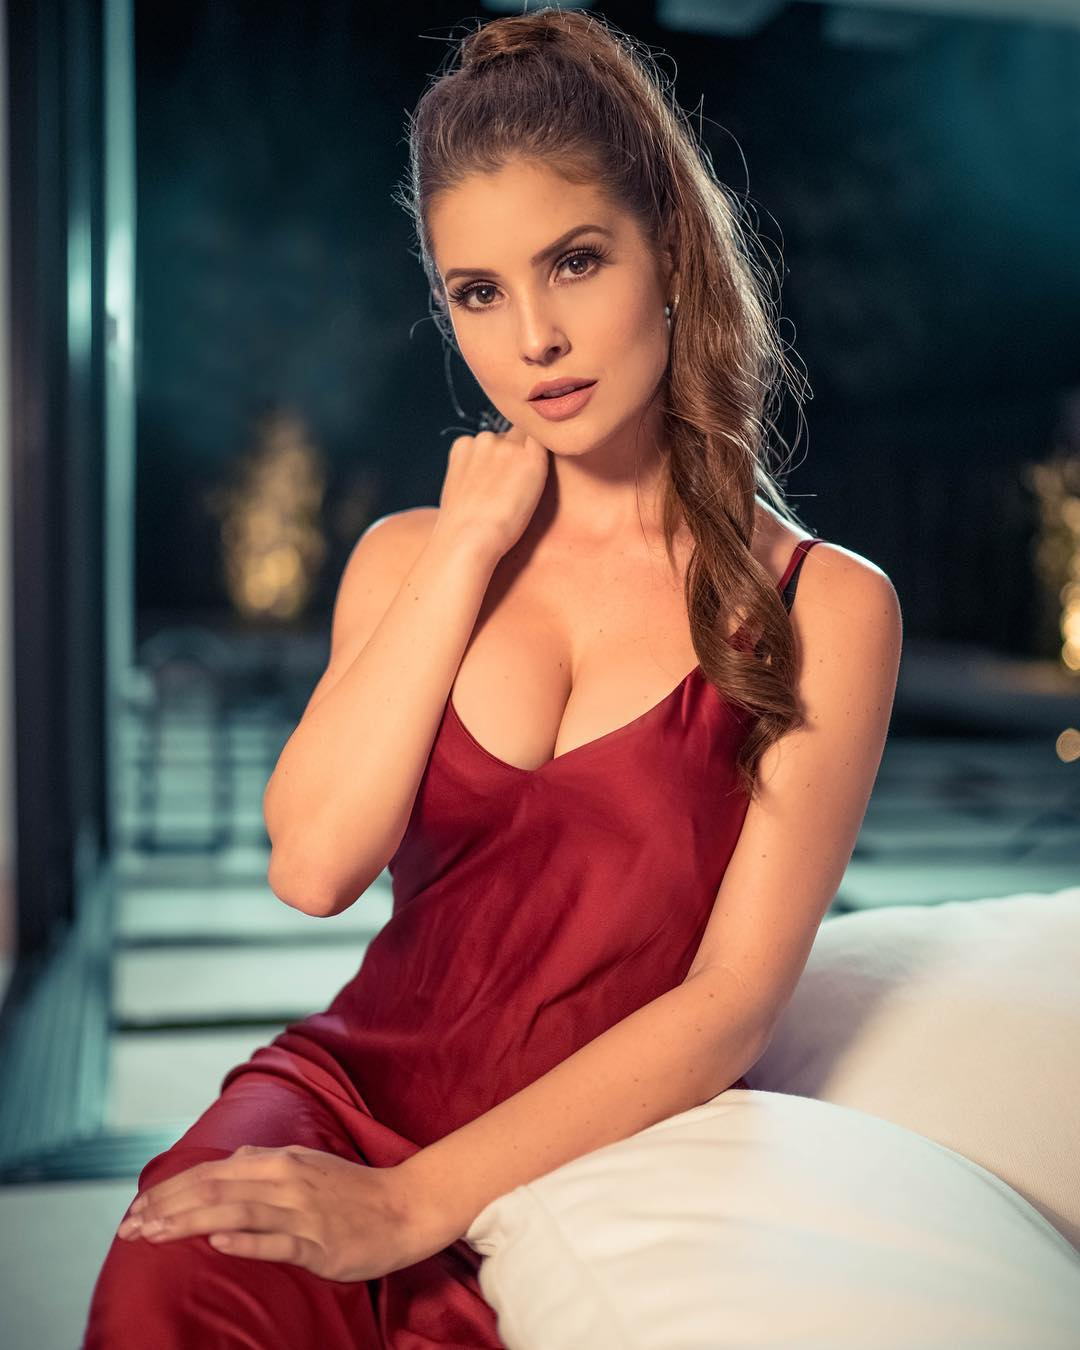 Hot photos of Playboy model and actress Amanda Cerny will take your breath away 25